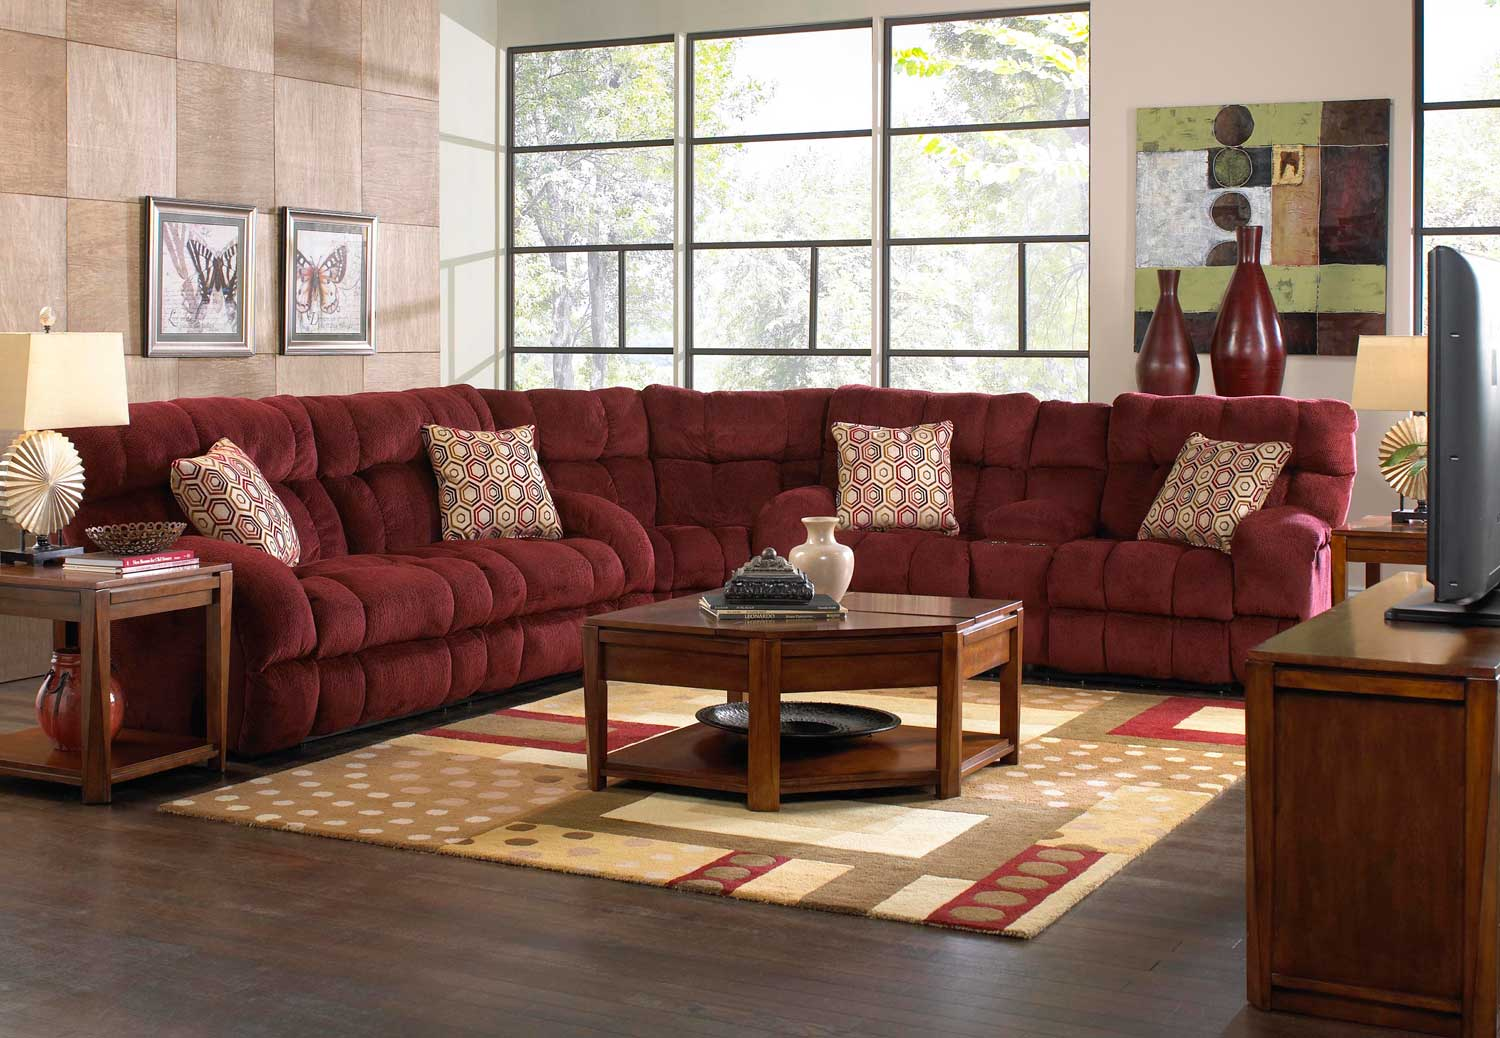 CatNapper Siesta Power Lay Flat Reclining Sectional Sofa Set - Wine